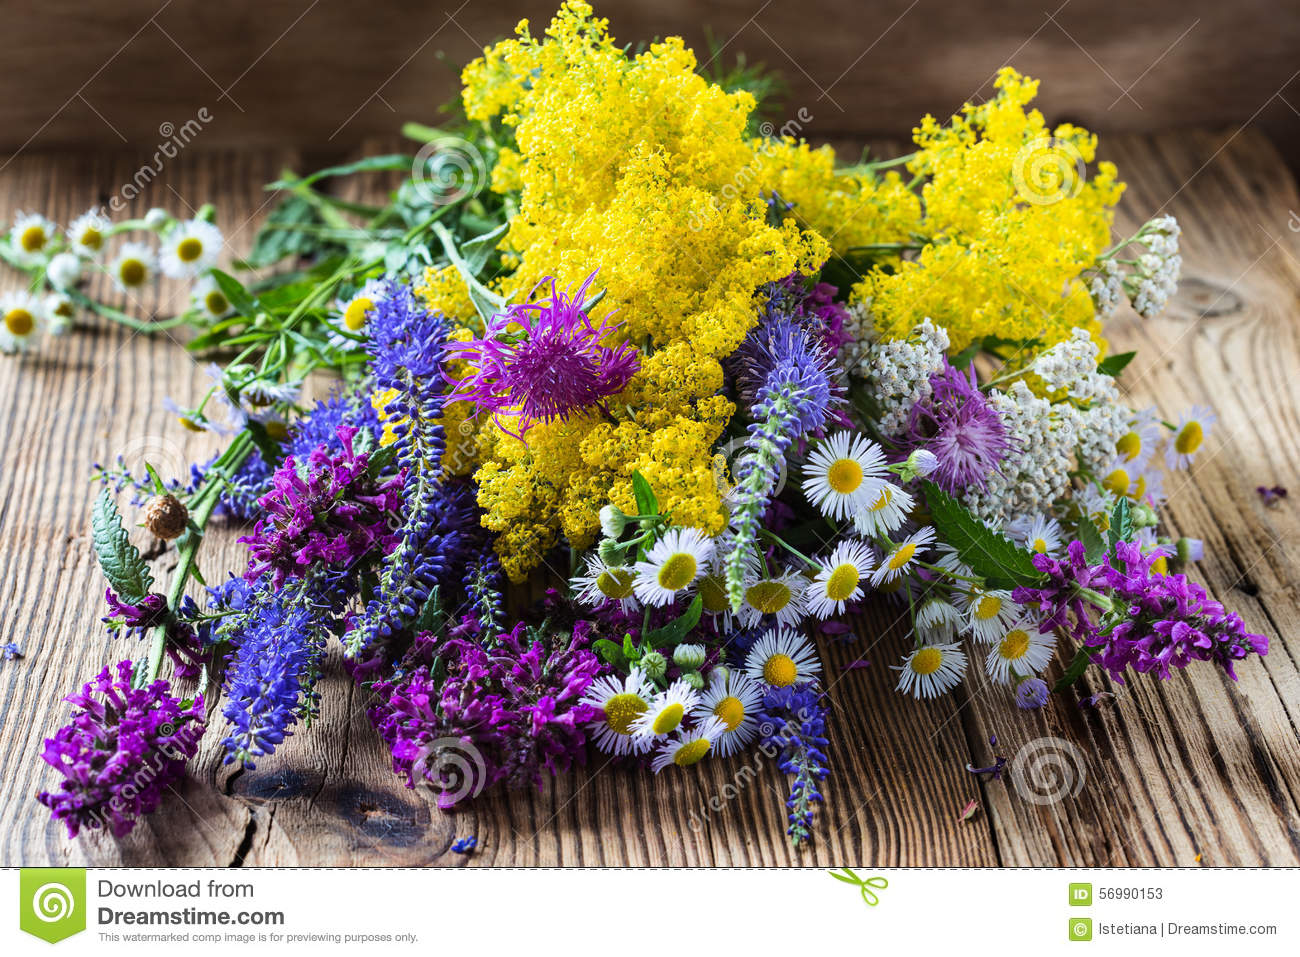 Summer Meadow Flowers Bouquet Stock Image - Image of fresh, green ...